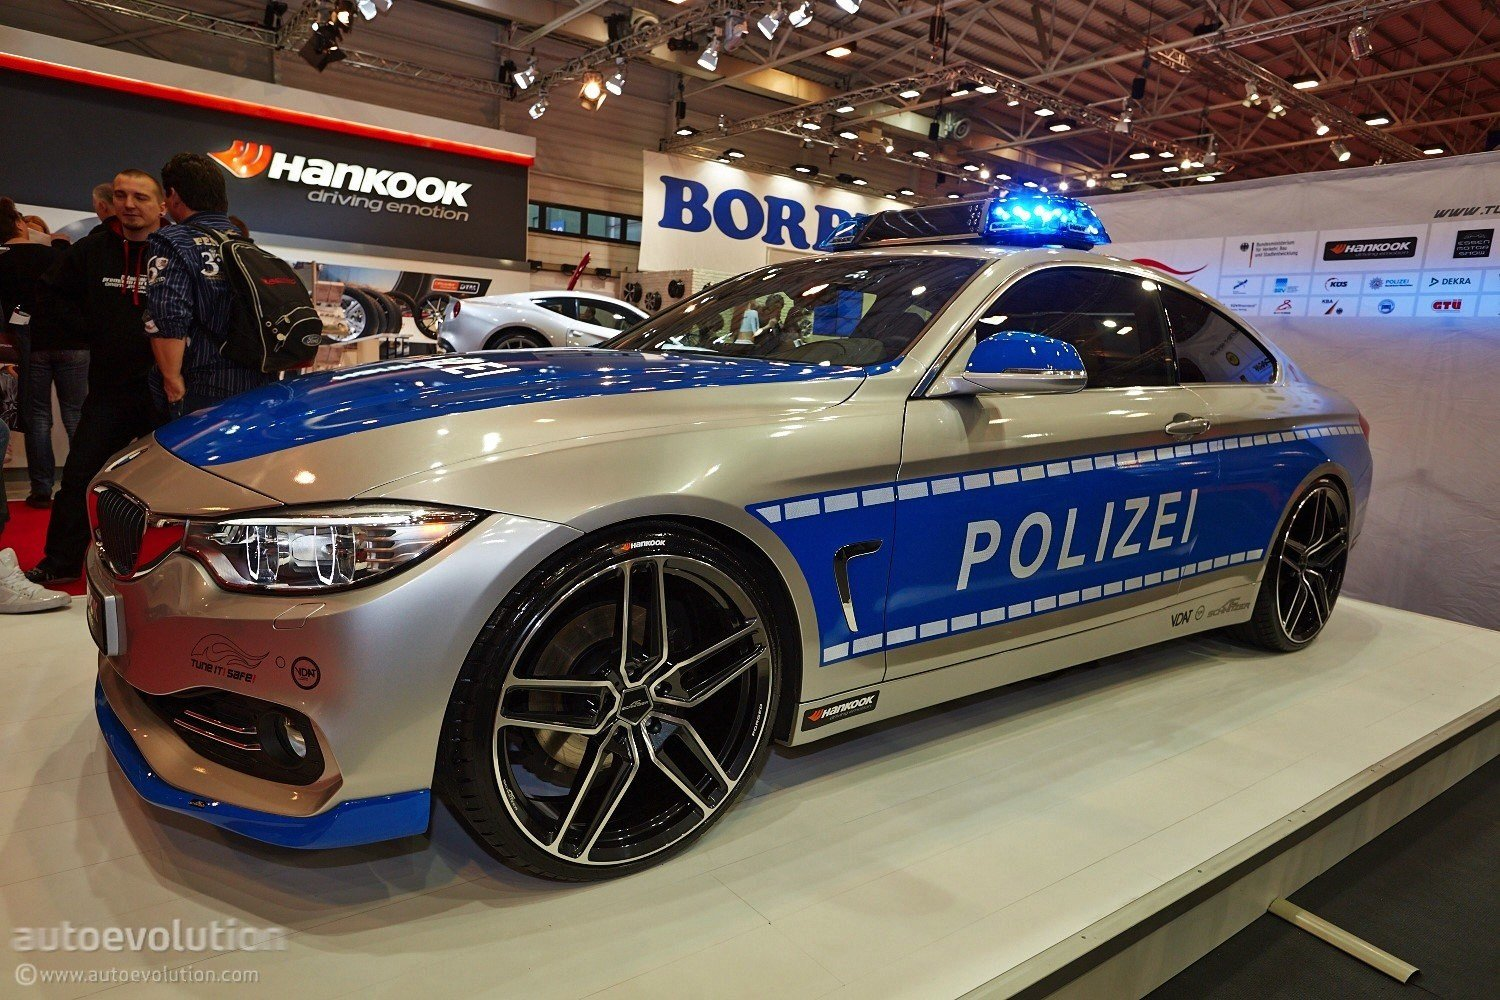 Latest Ac Schnitzer Police Car Has 294 Hp At Essen Motor Show Free Download